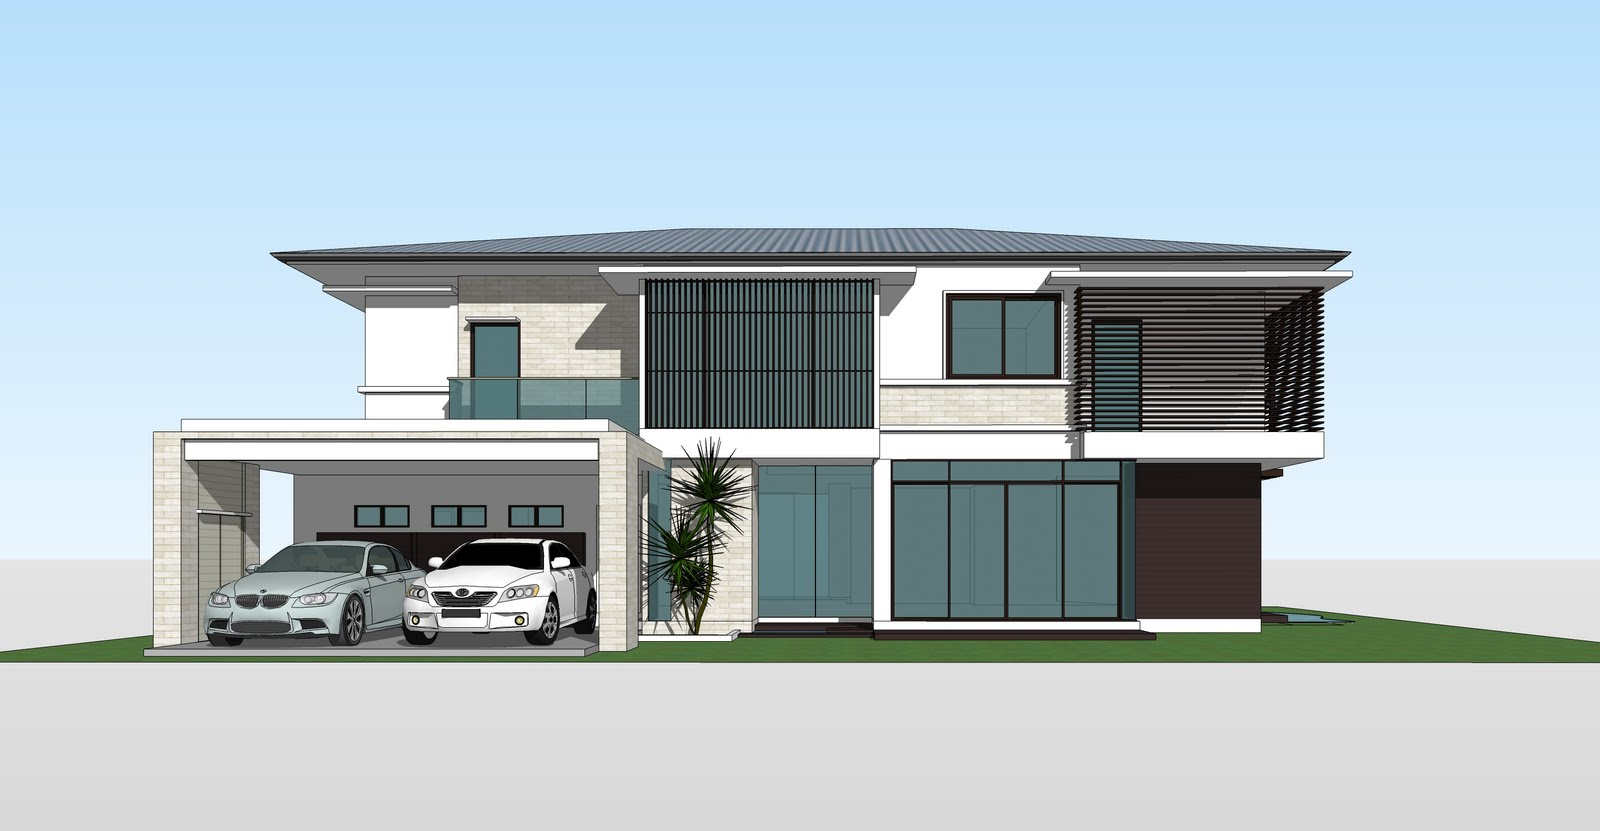 Sketchup Front Elevation : Sketchup render by artlantis cont weeralert amitpay